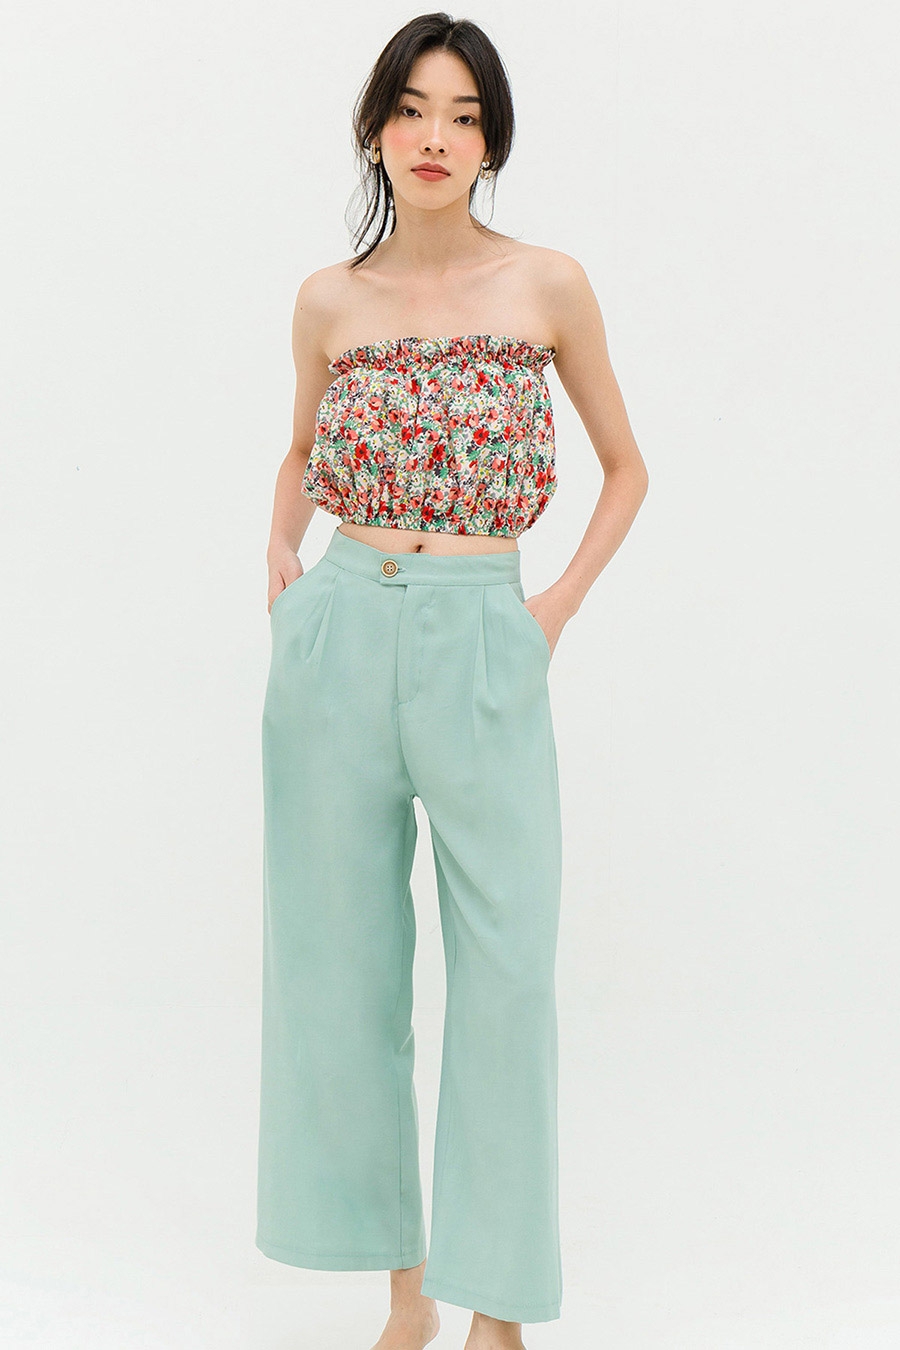 *RESTOCKED* INES PANTS - GREEN SPRING